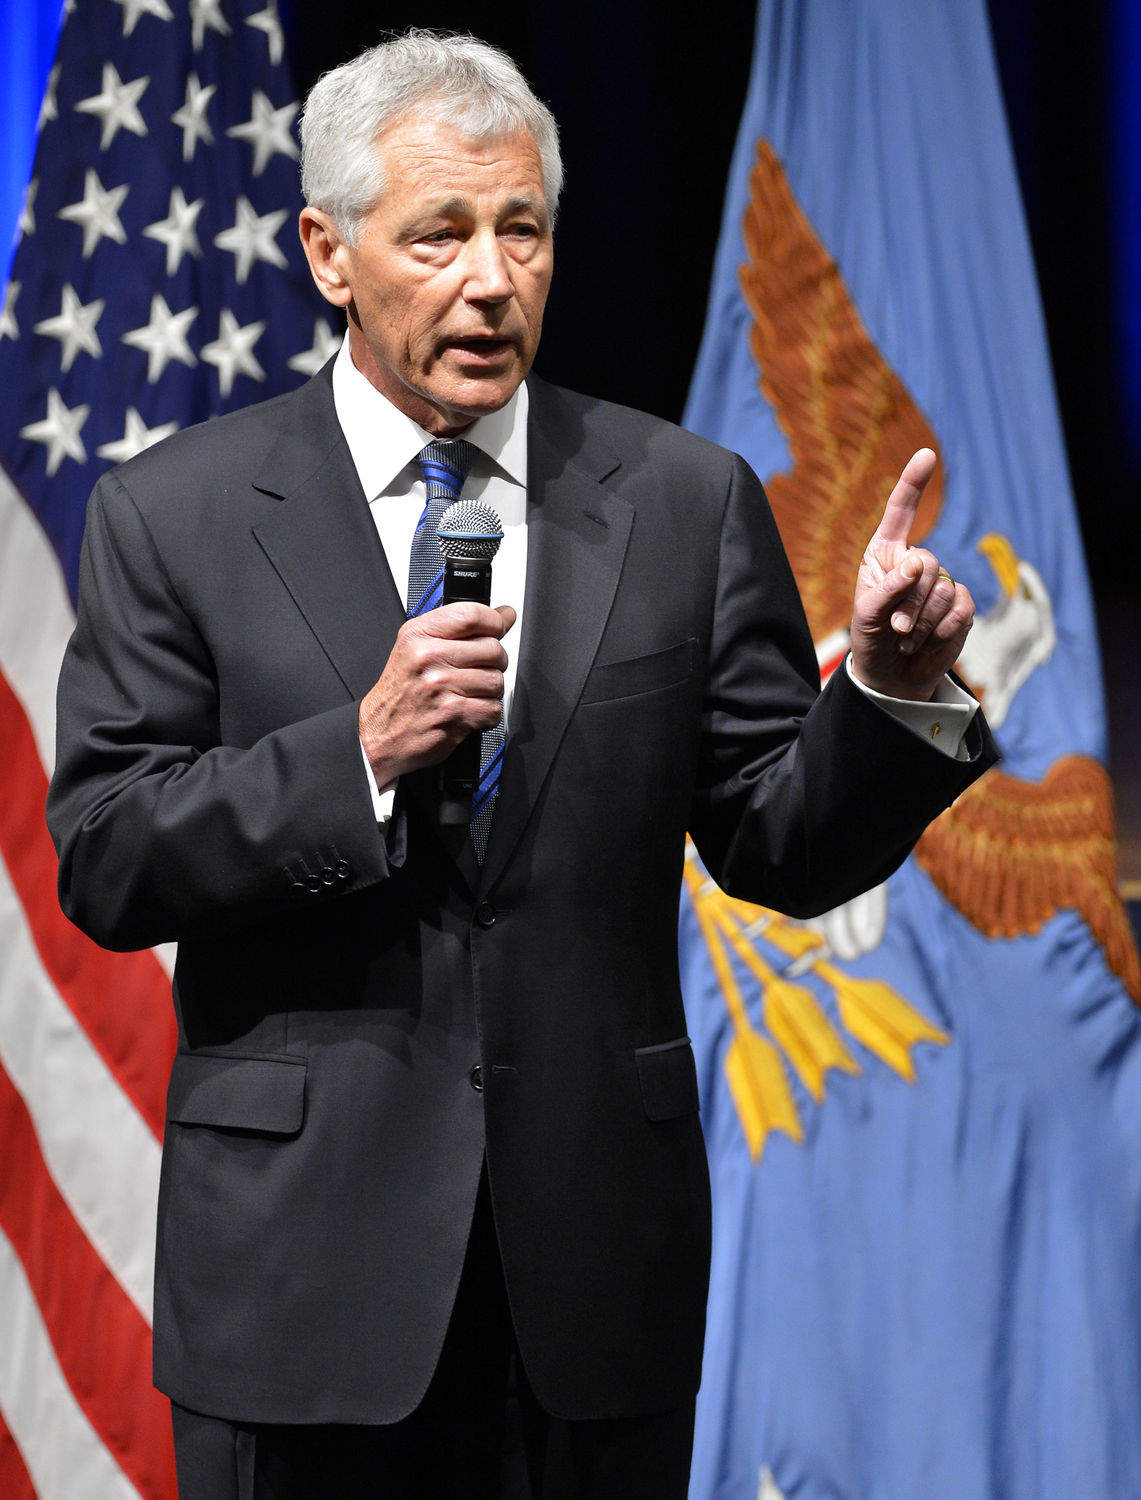 Chuck Hagel speaks at Pentagon on his first day after being sworn in as new Defense Secretary